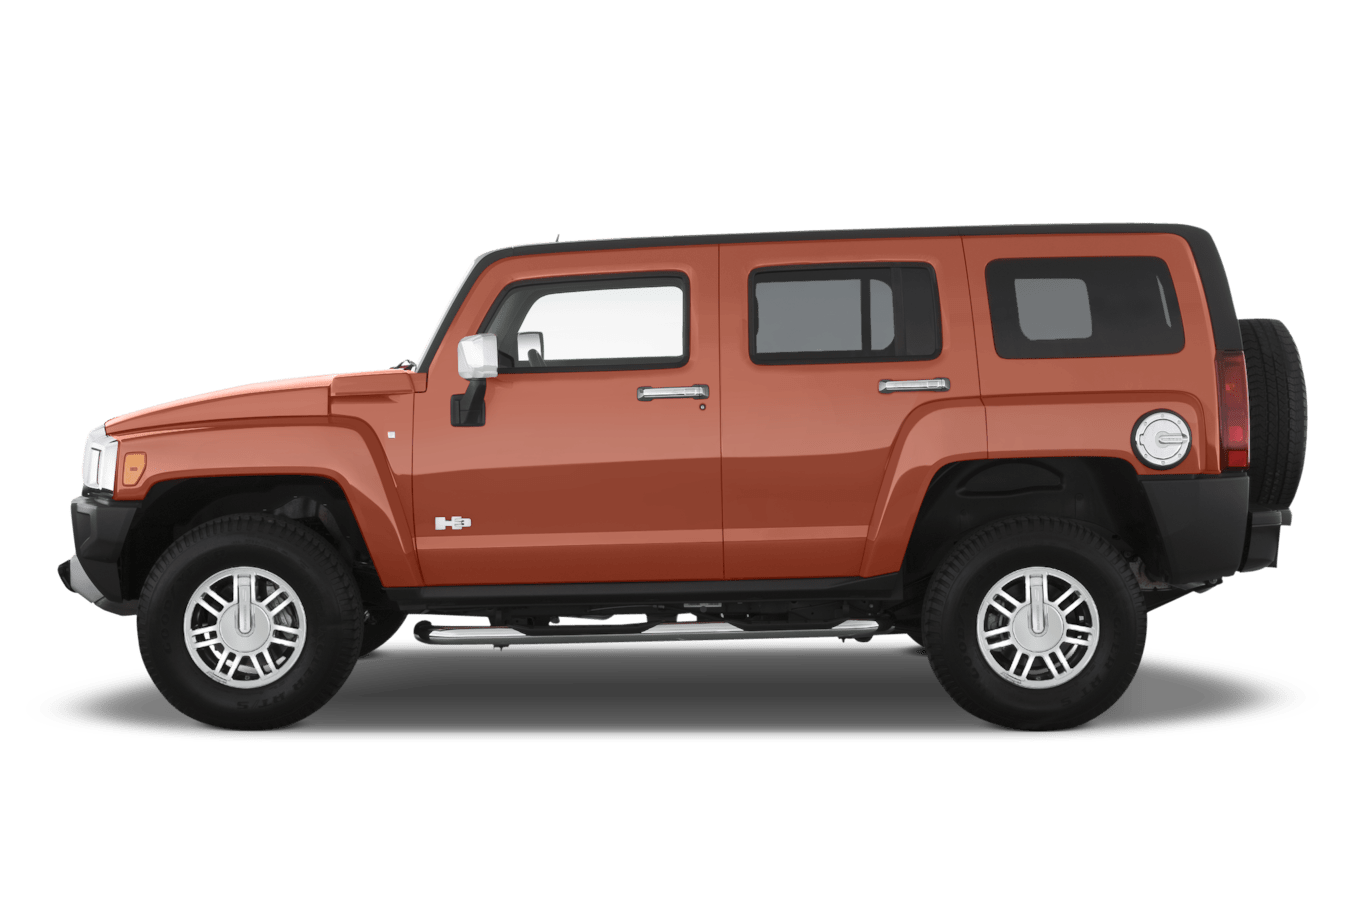 Philippines Jeep Wrangler Price